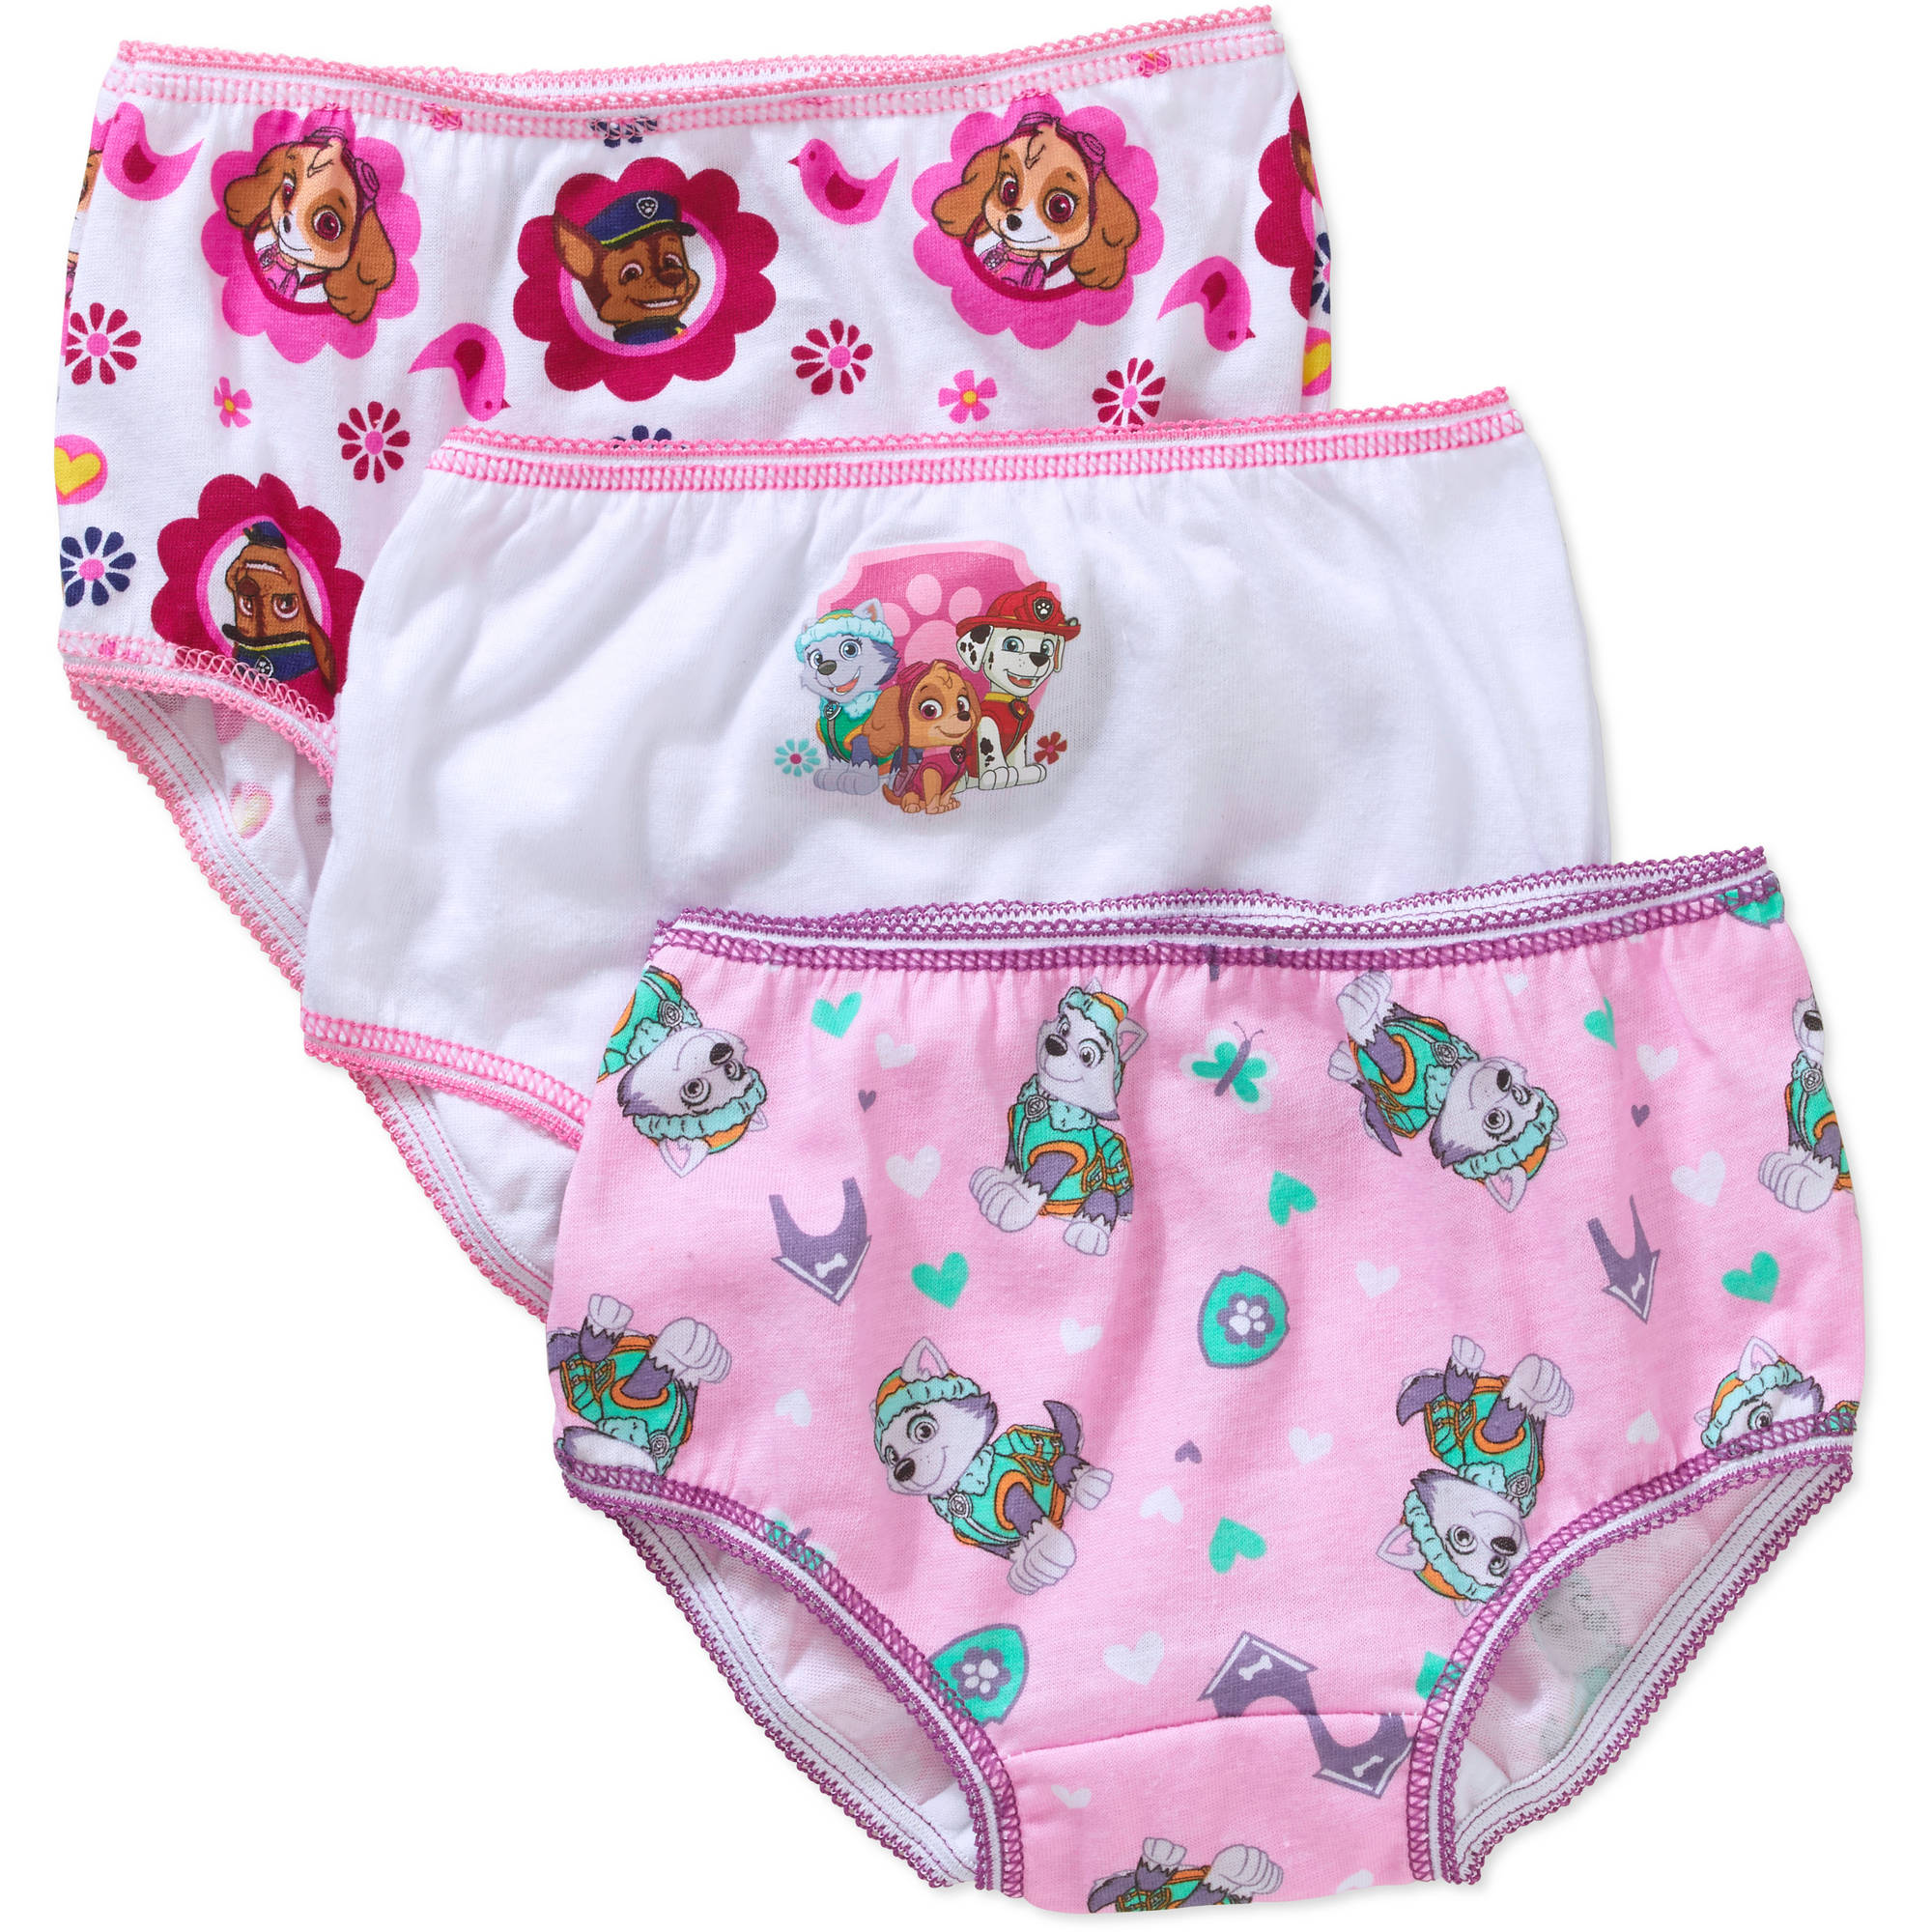 Nickelodeon Paw Patrol Toddler Girls Underwear, 3-Pack